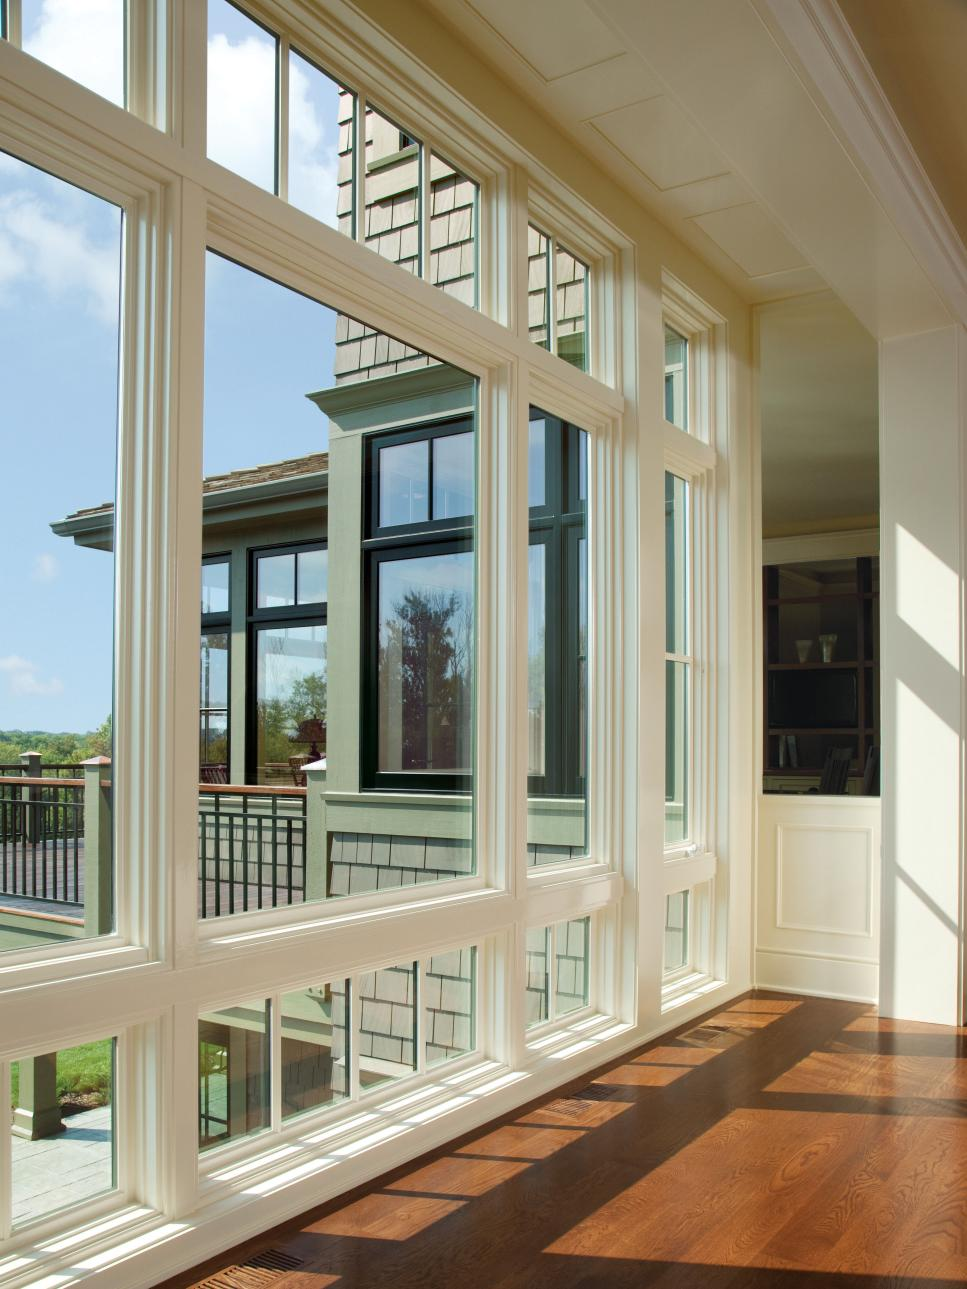 8 types of windows hgtv for Where to buy house windows